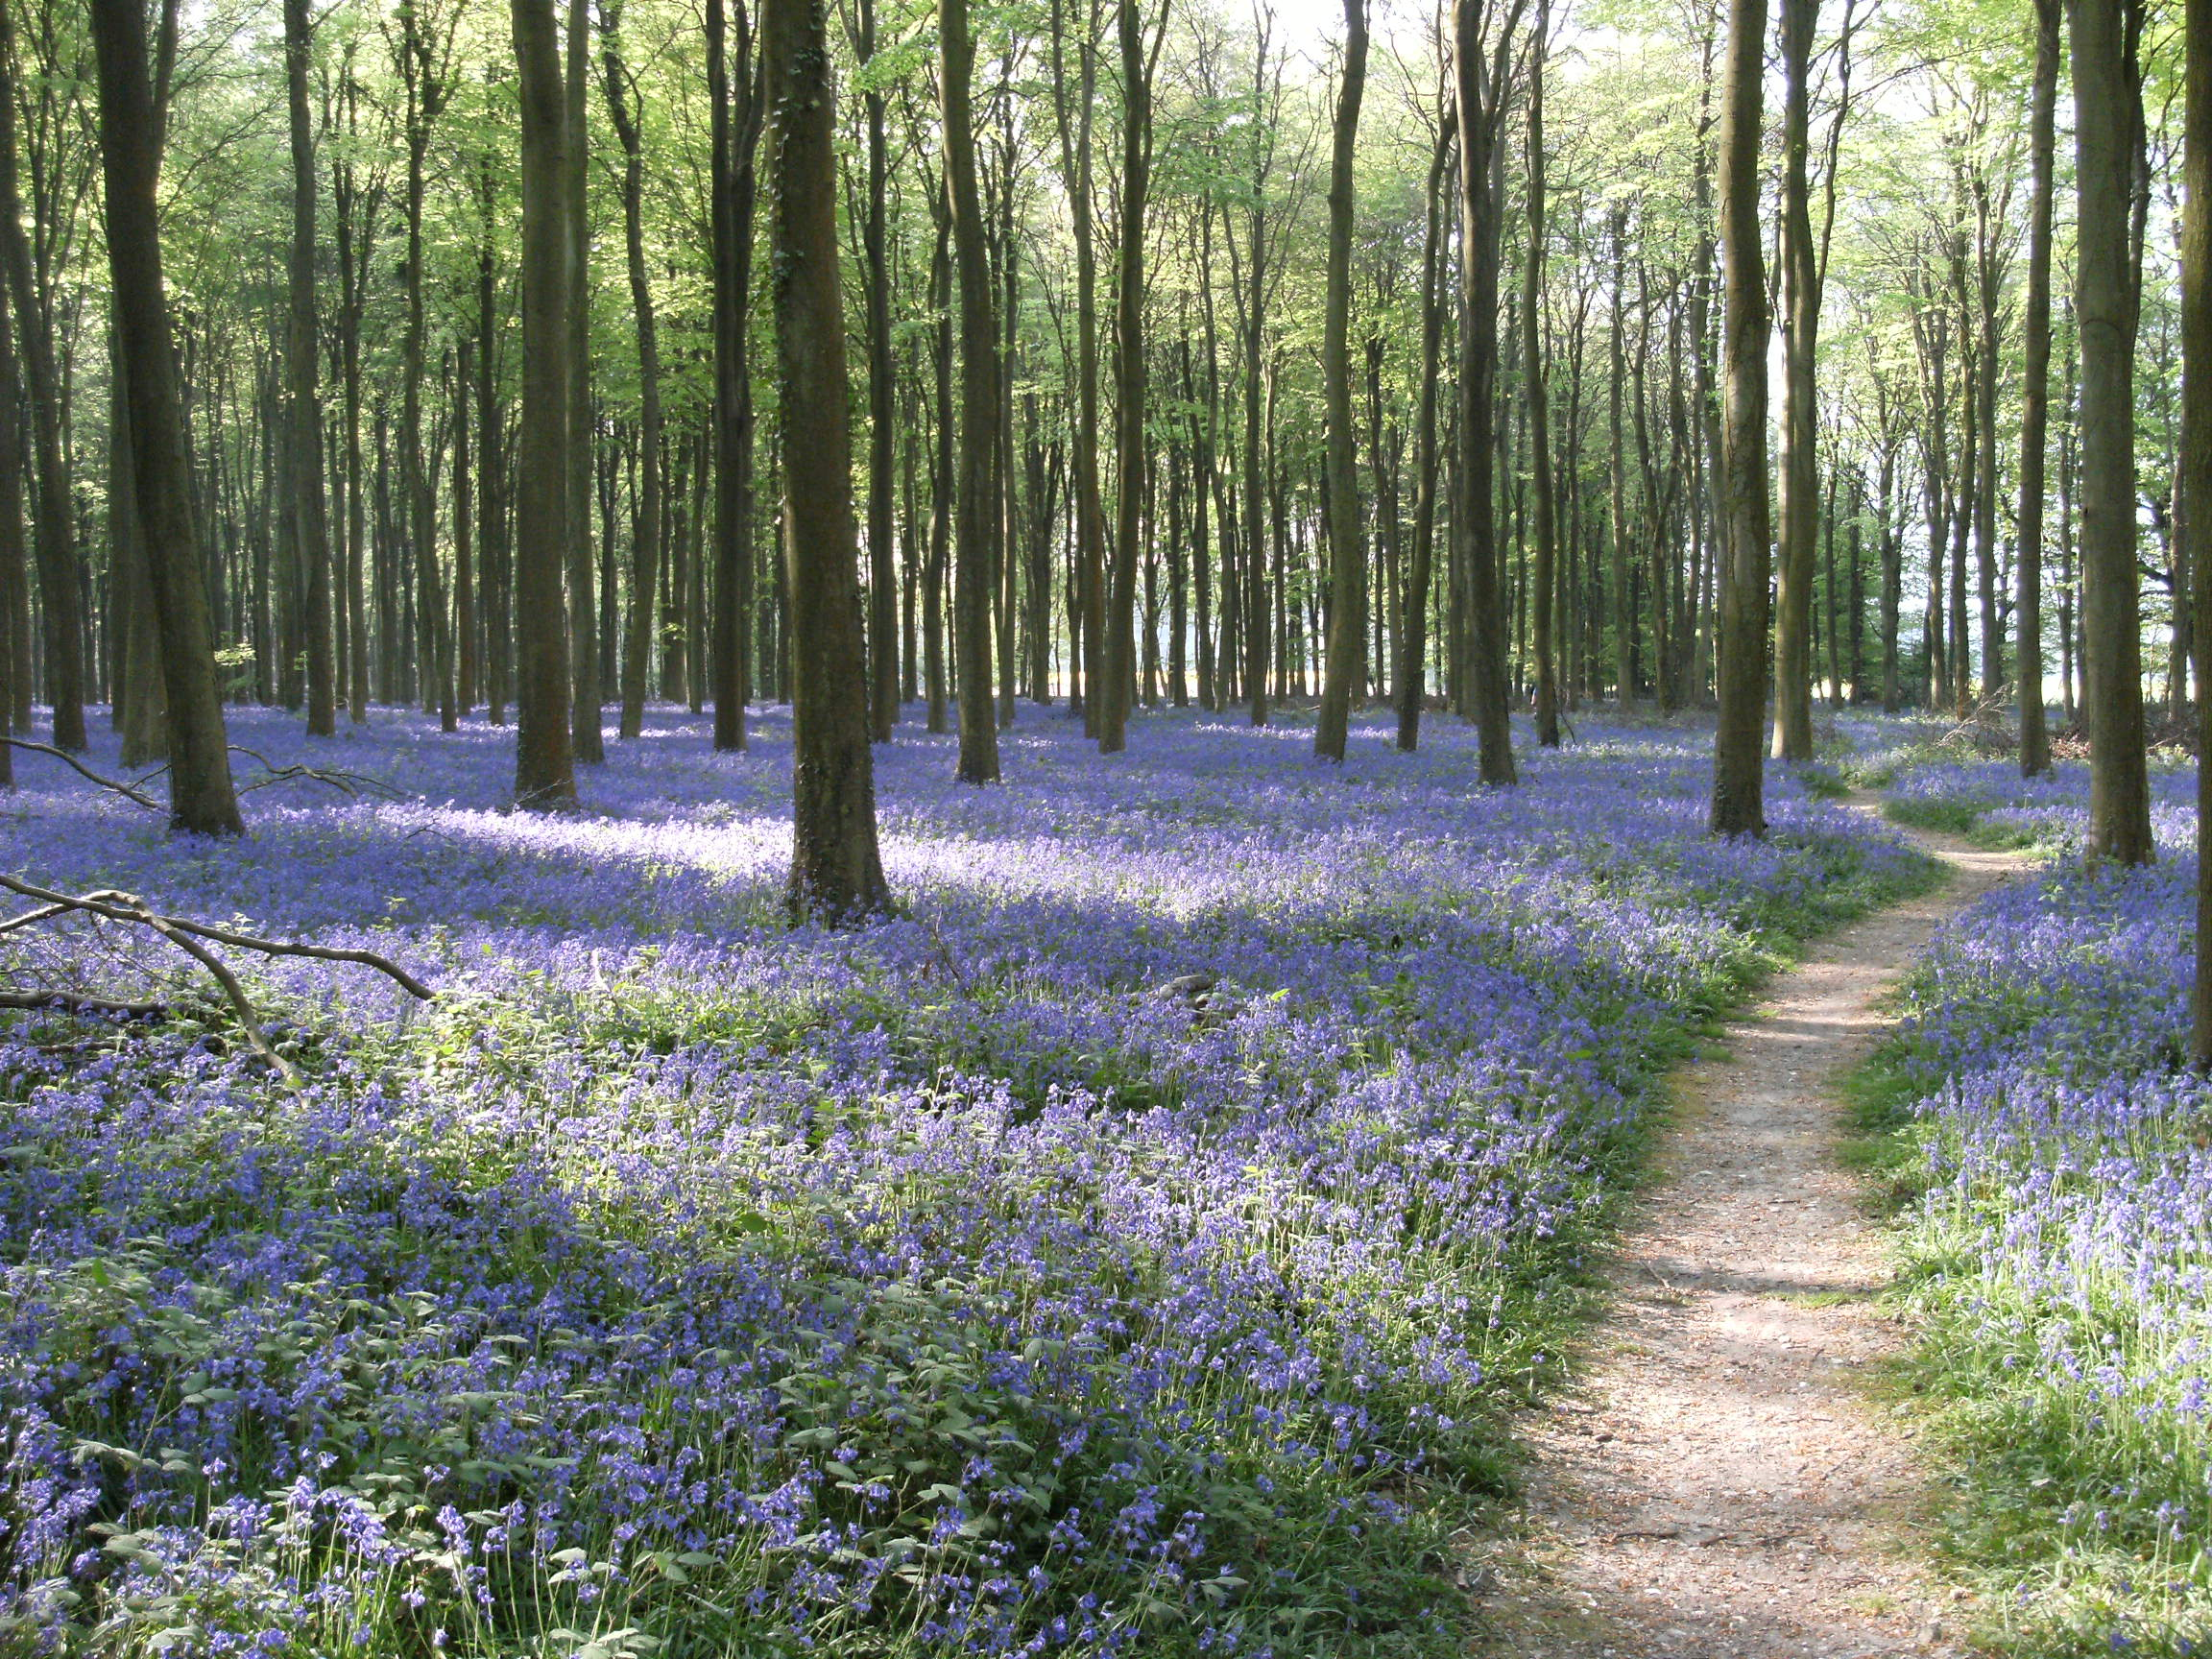 Bluebells at Angmering